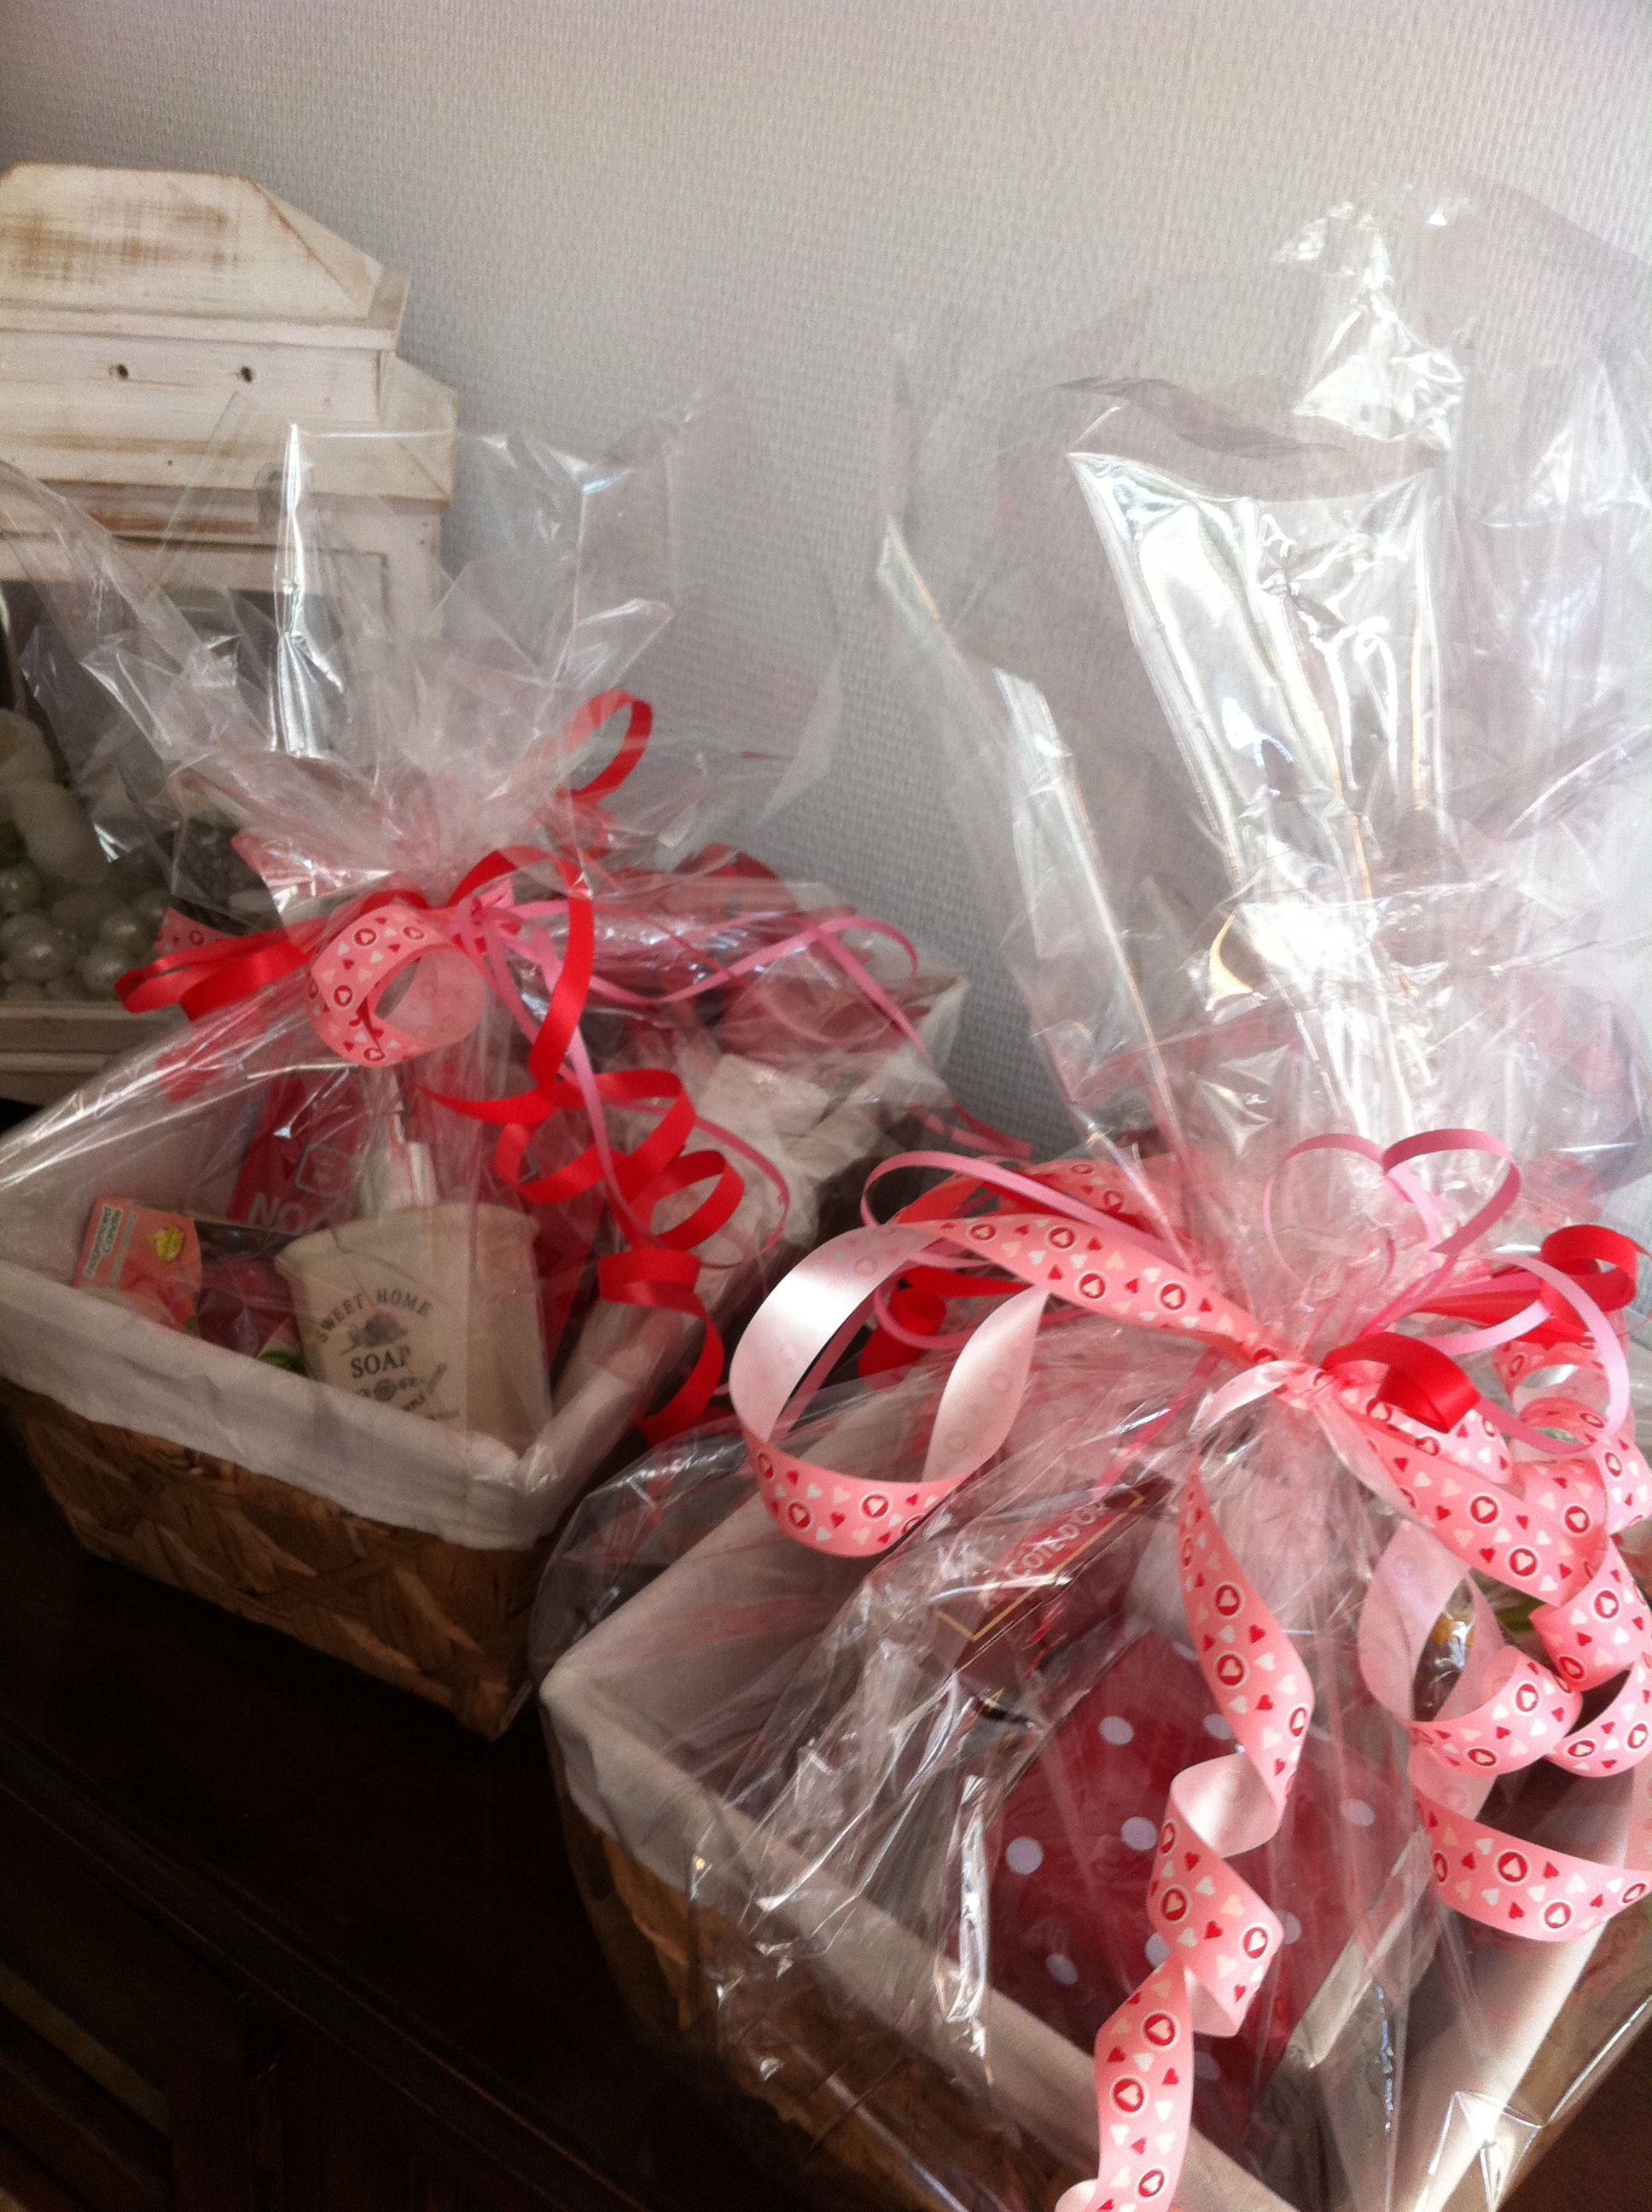 So I Made Two Mother S Day Baskets Filled With Chocolate Small Gifts And Feel Goodies Wrapped With Cellophane And Pink Mothers Day Baskets Gifts Small Gifts